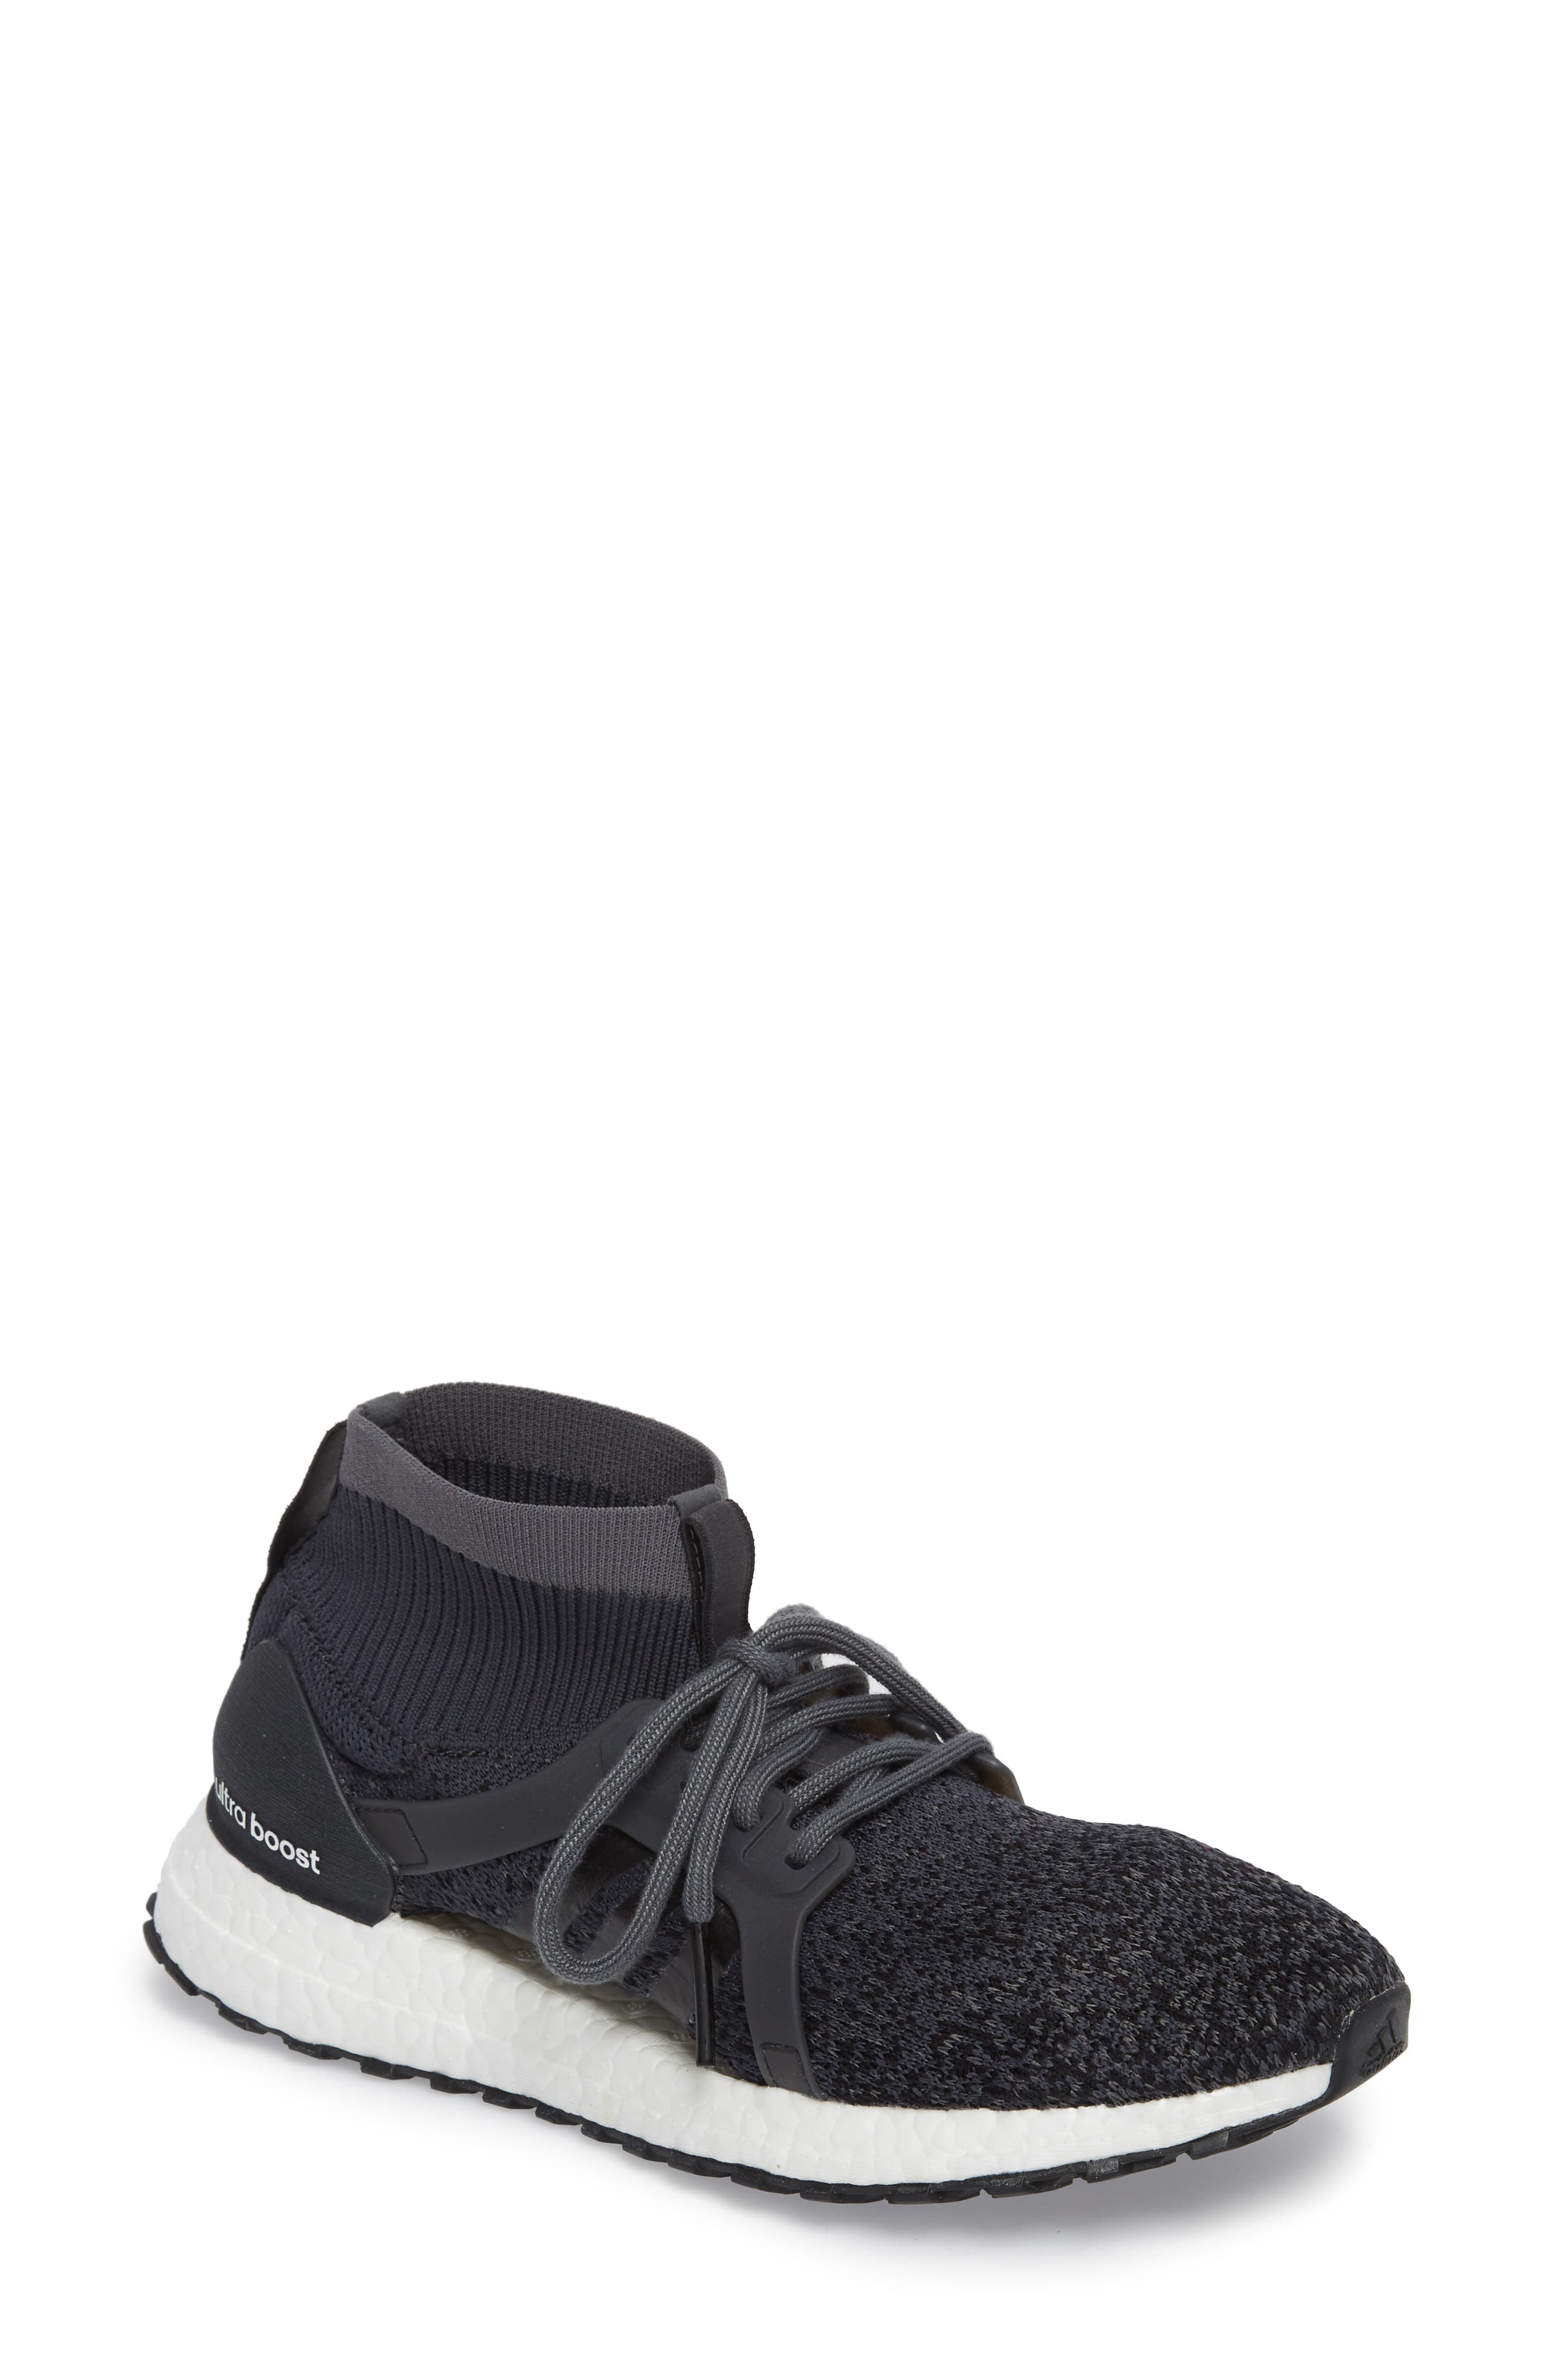 Alternate Image 1 Selected - adidas UltraBOOST X All Terrain Water Resistant Running Shoe (Women)